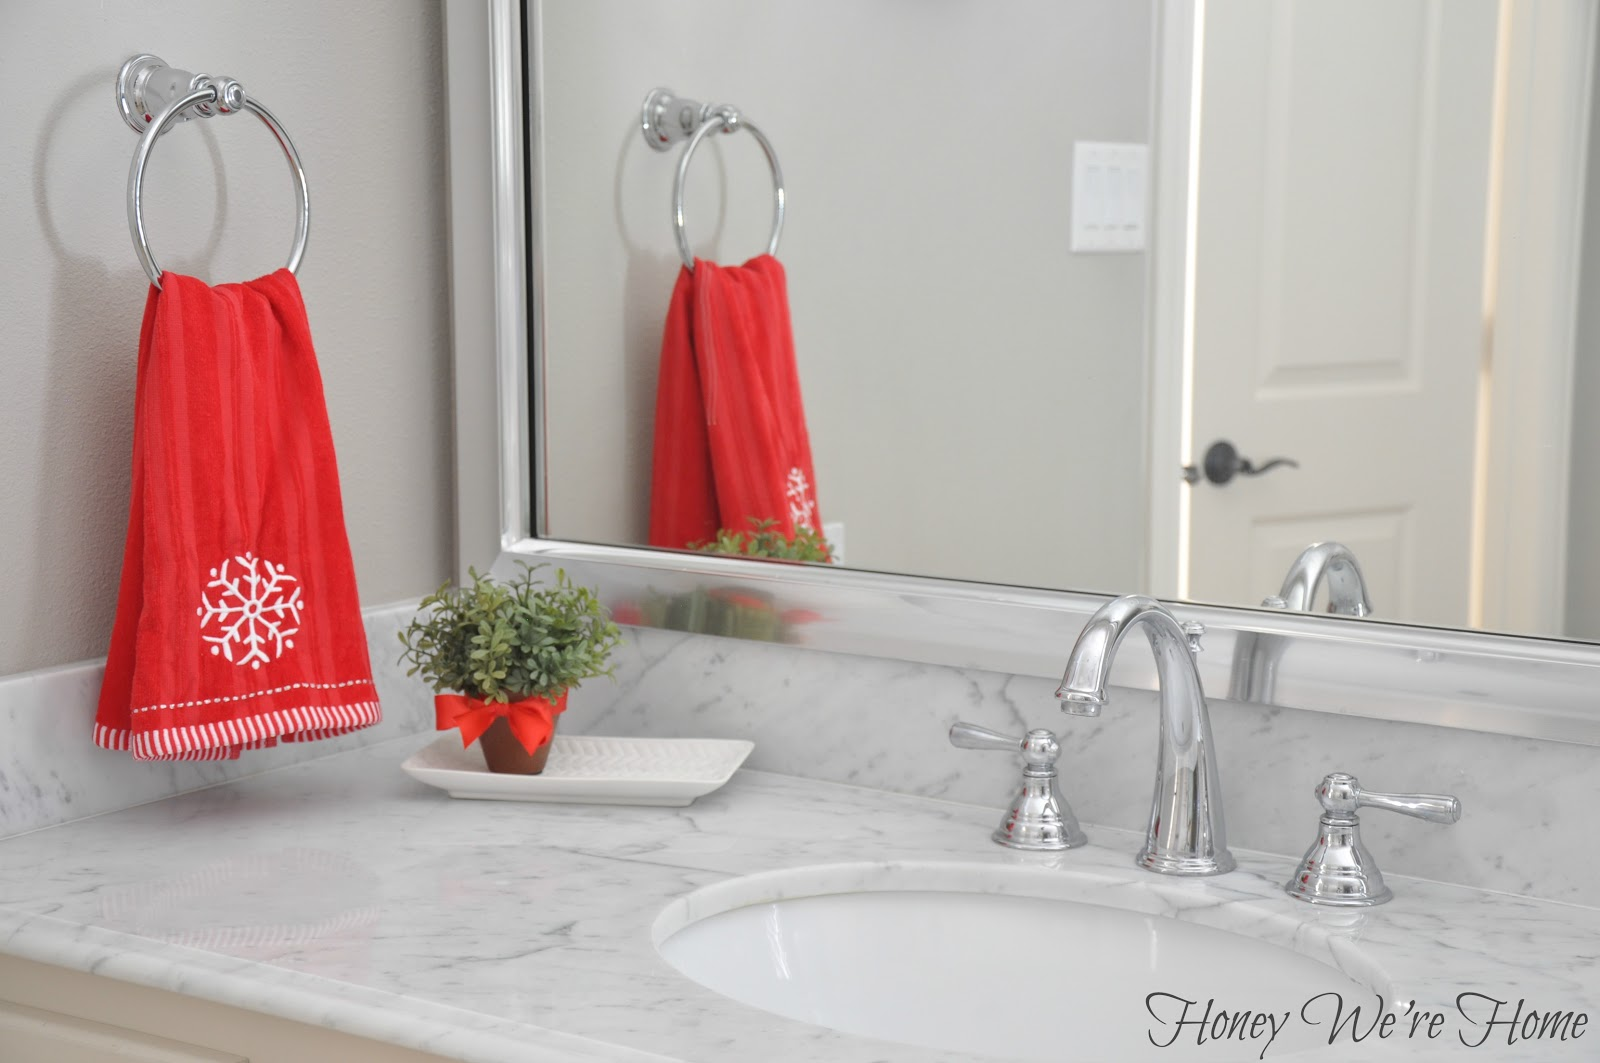 Christmas Bathroom Decor Target : Target holiday accessories in the bathroom honey we re home